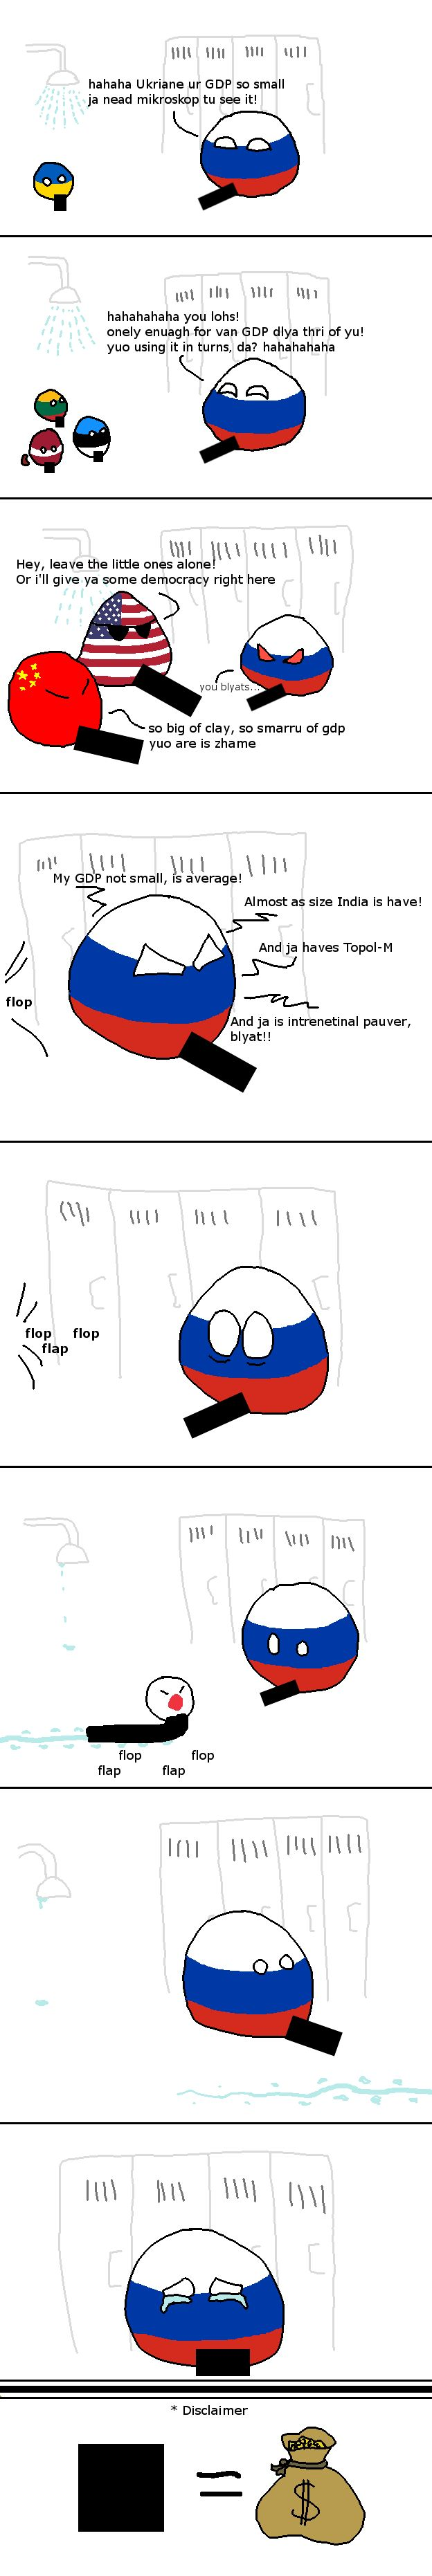 G is for Gross ~GDP ( Russia, Ukraine, Lithuania, Latvia, Estonia, USA, China, Japan ) by thrawn0o #polandball #countryball